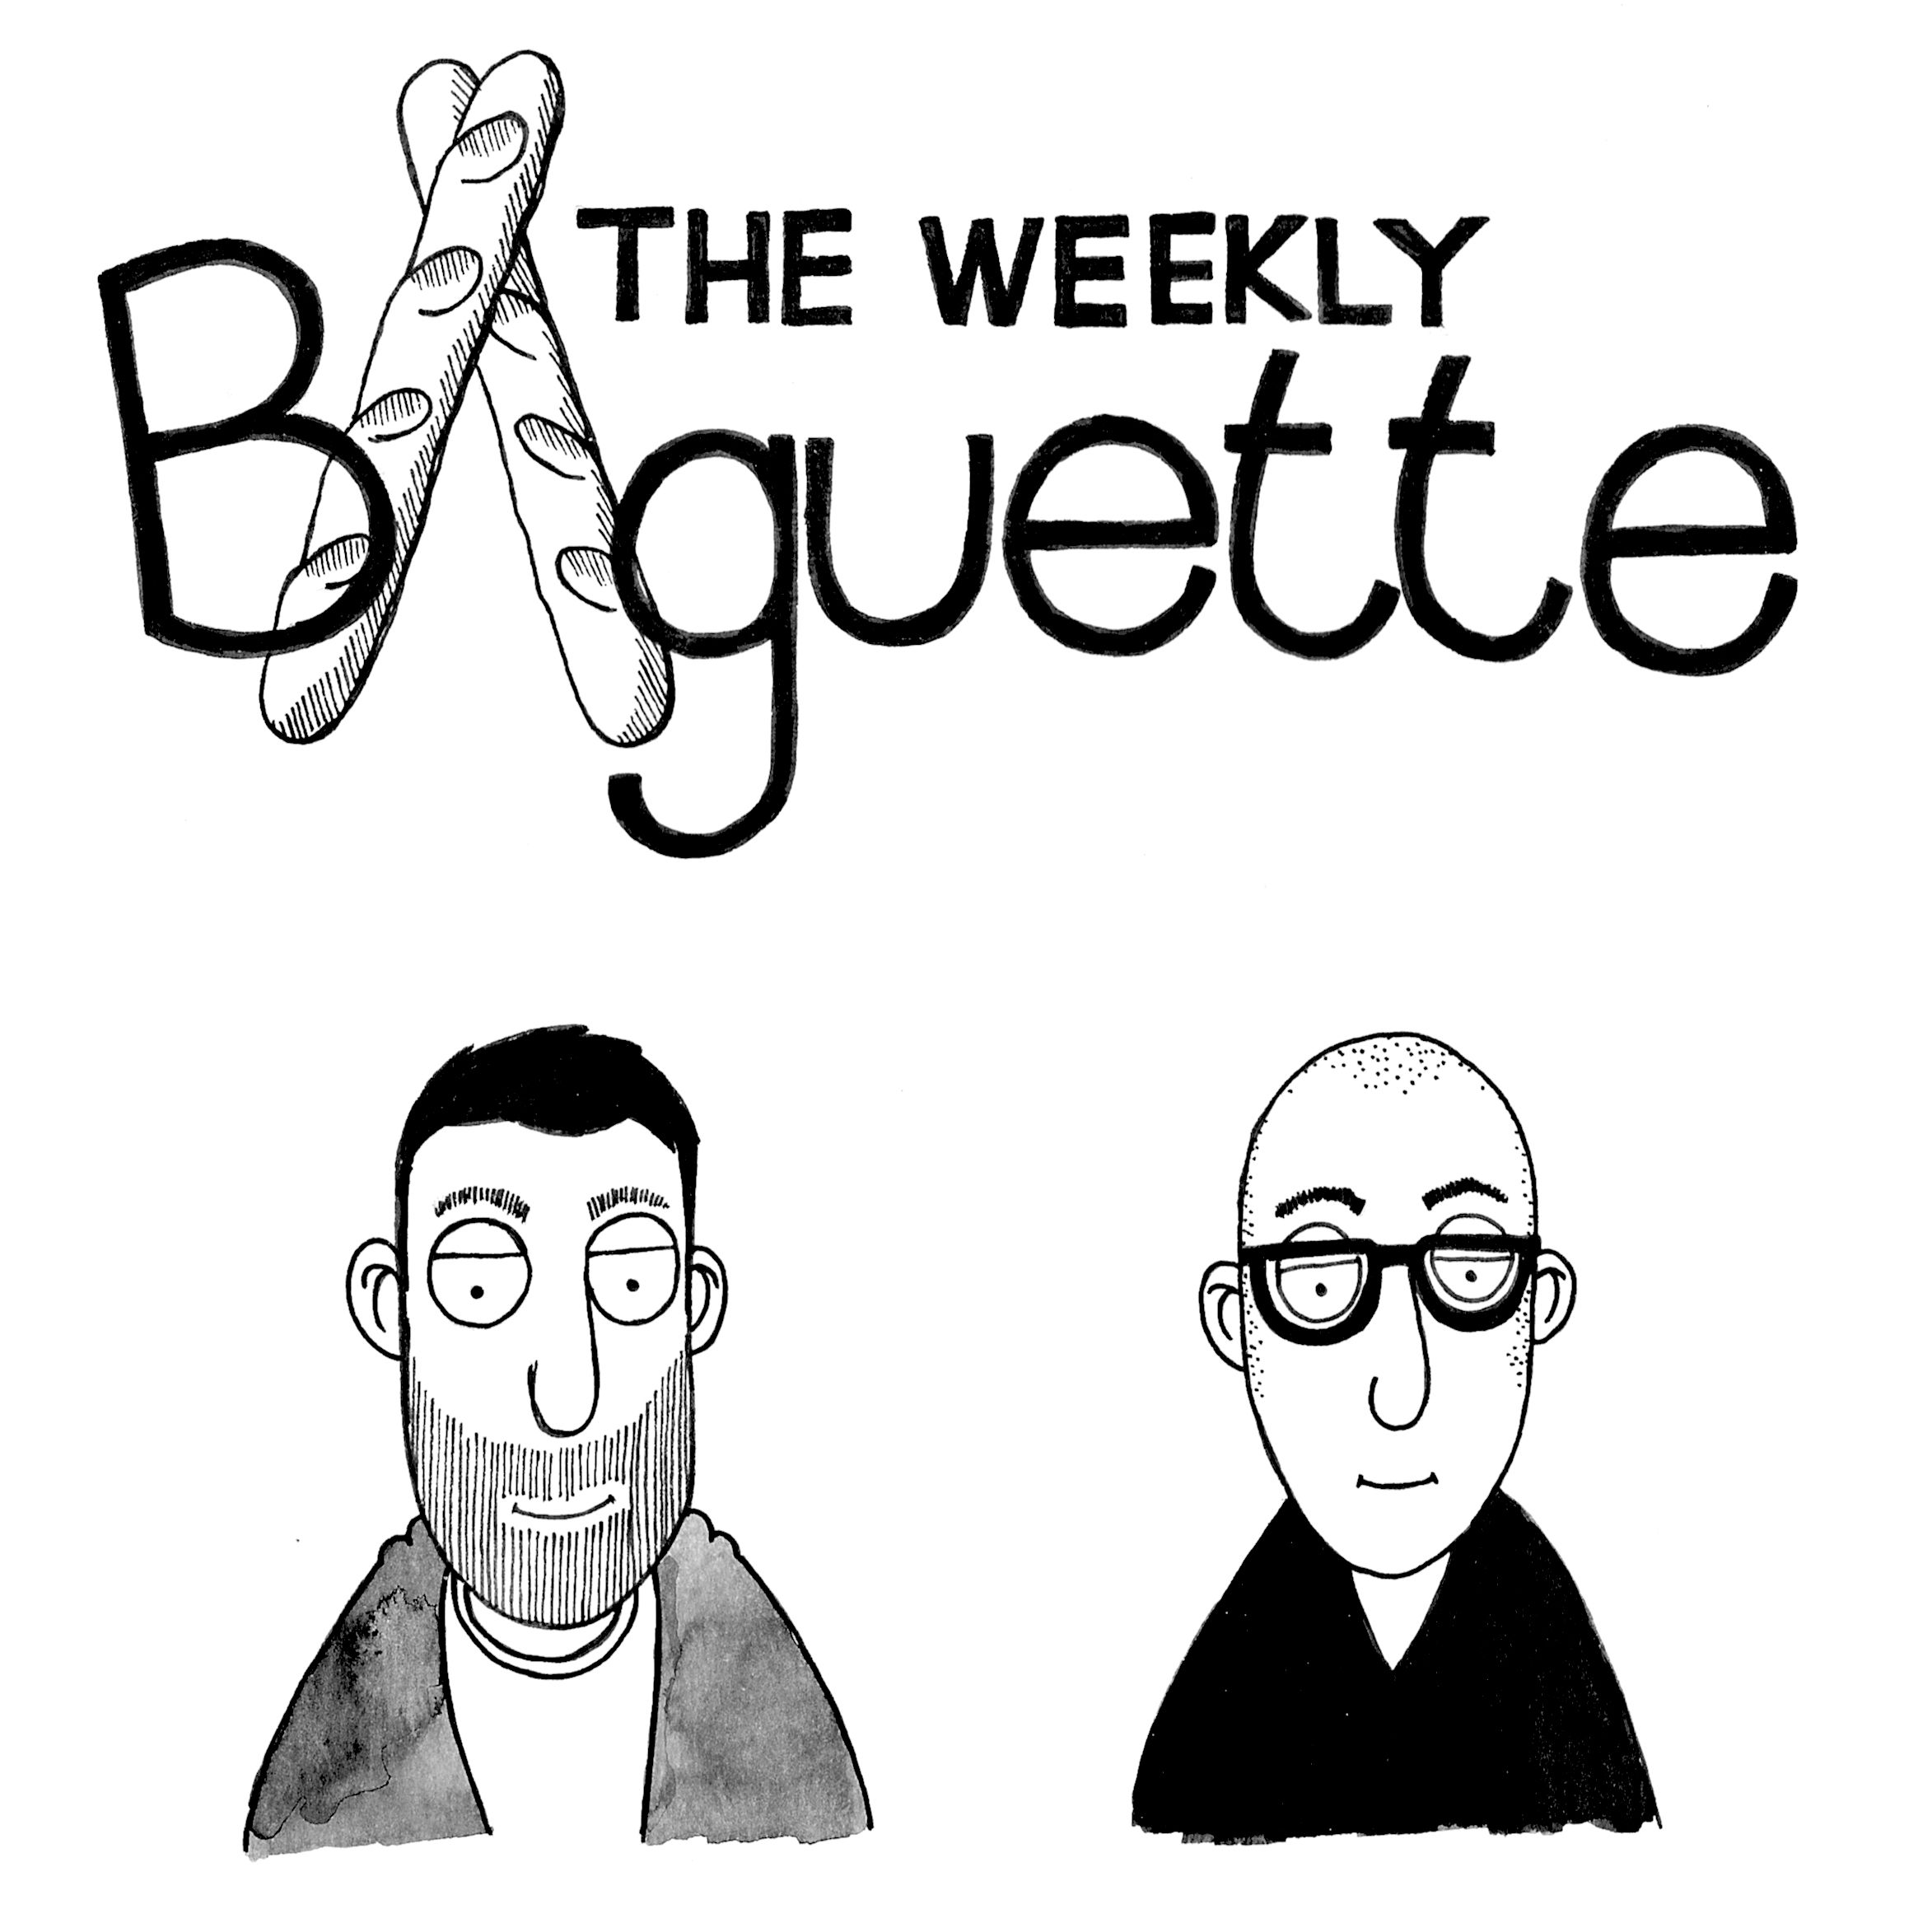 The Weekly Baguette